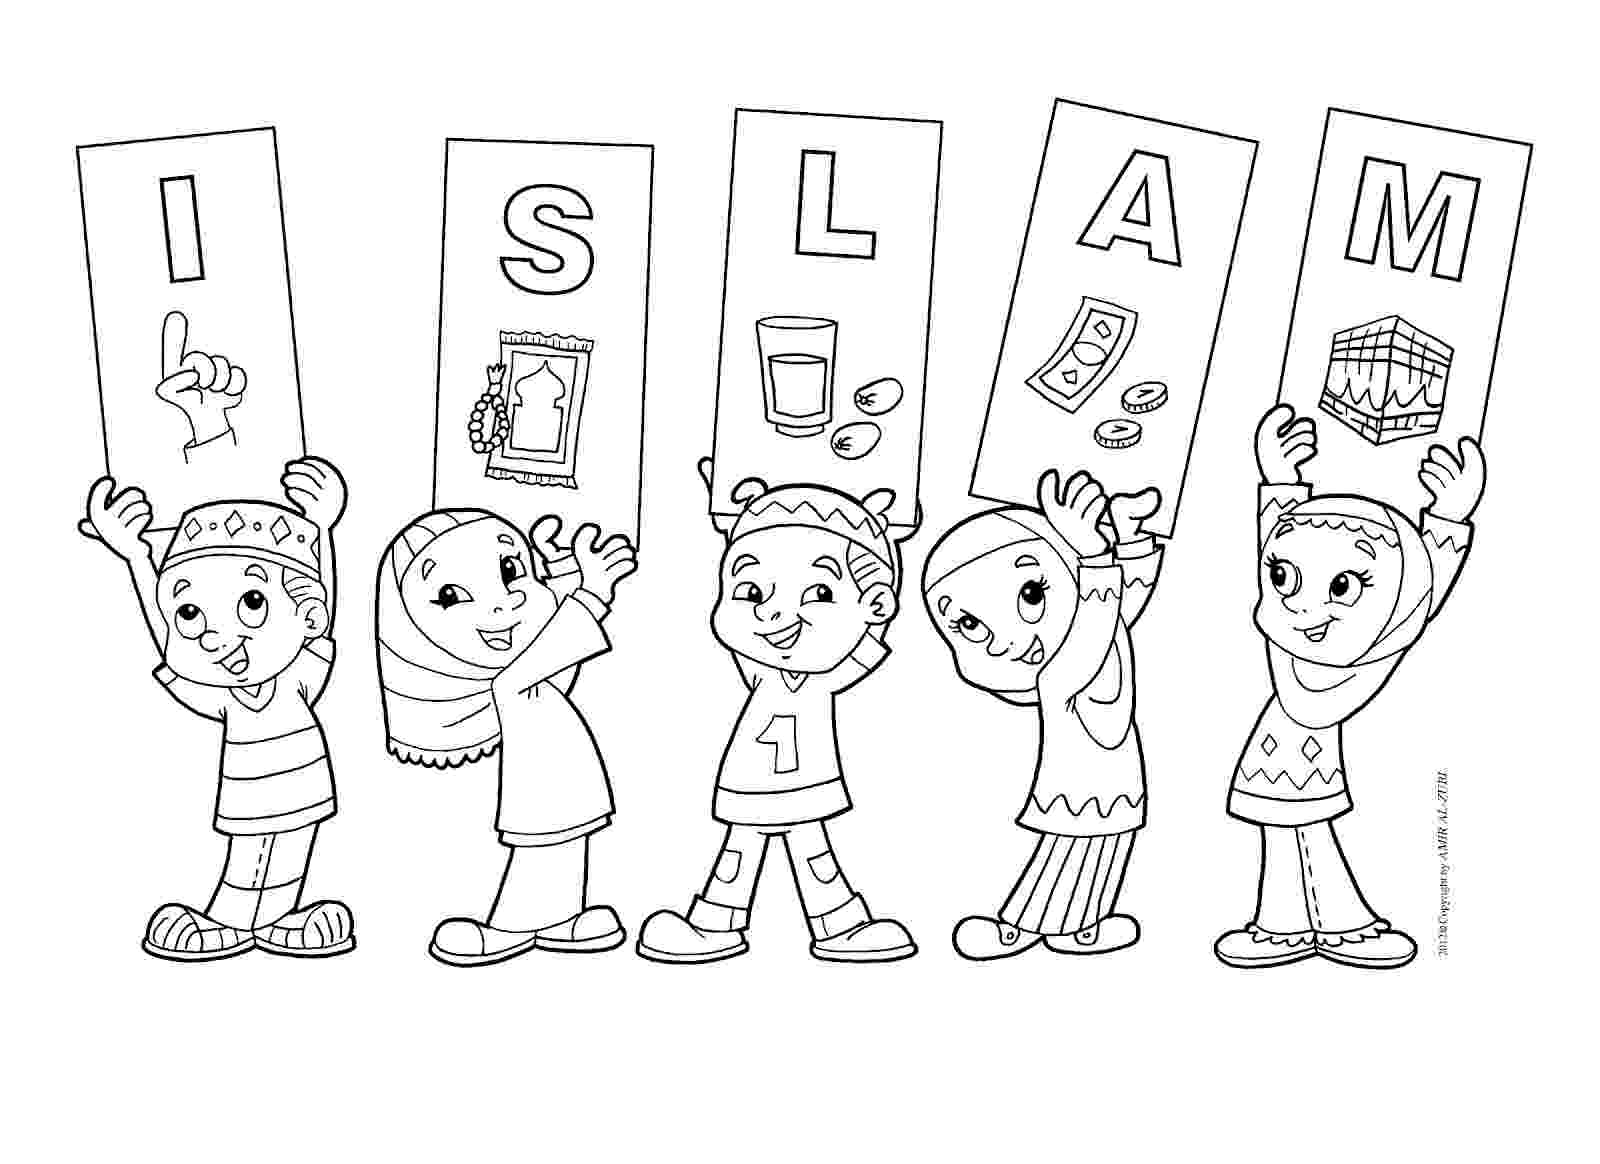 islamic coloring pages homeschoolers39 file cabinet 2nd week may moral stories coloring islamic pages